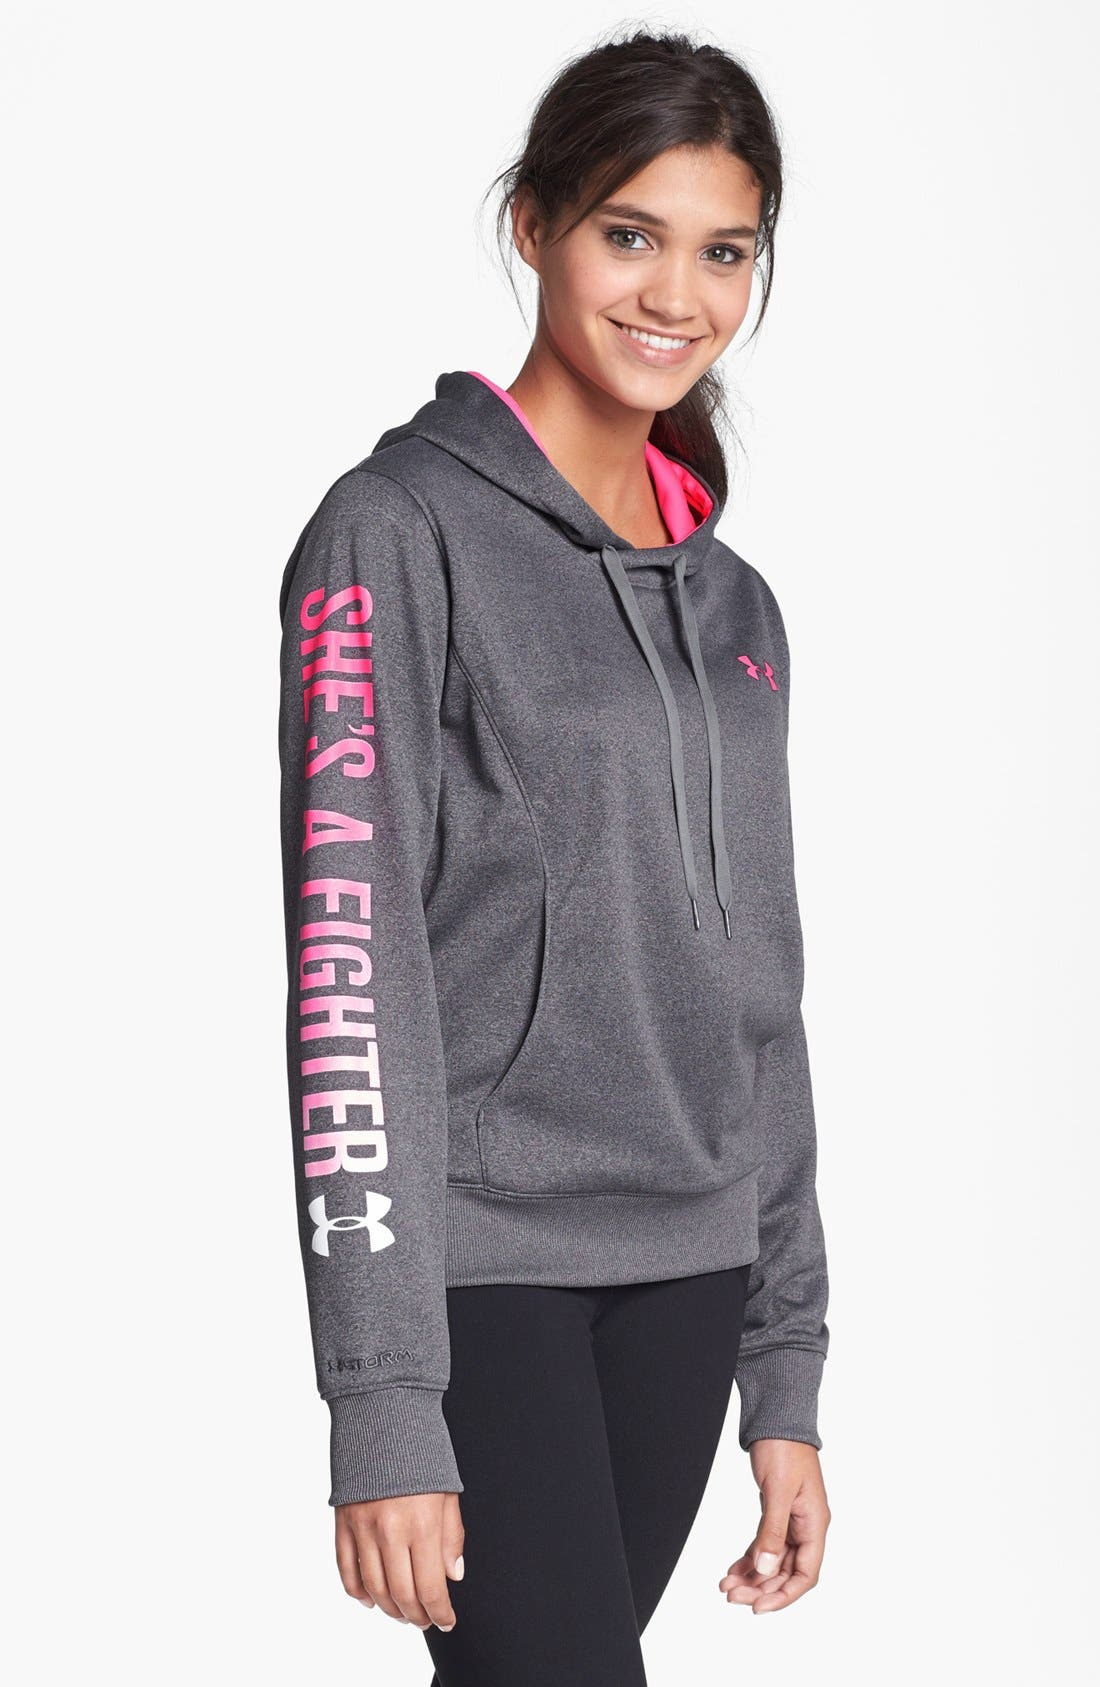 Main Image - Under Armour 'Power in Pink - She's a Fighter' Hooded Sweatshirt